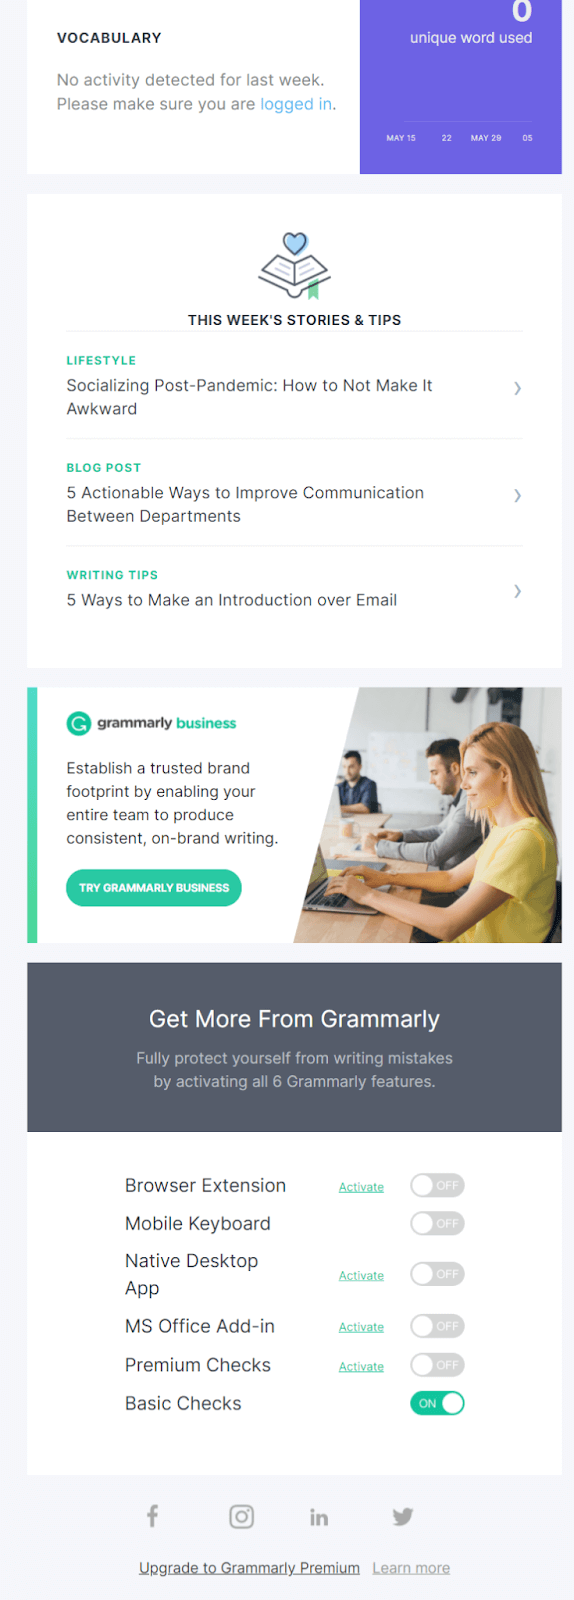 Onboarding email example #7, second part